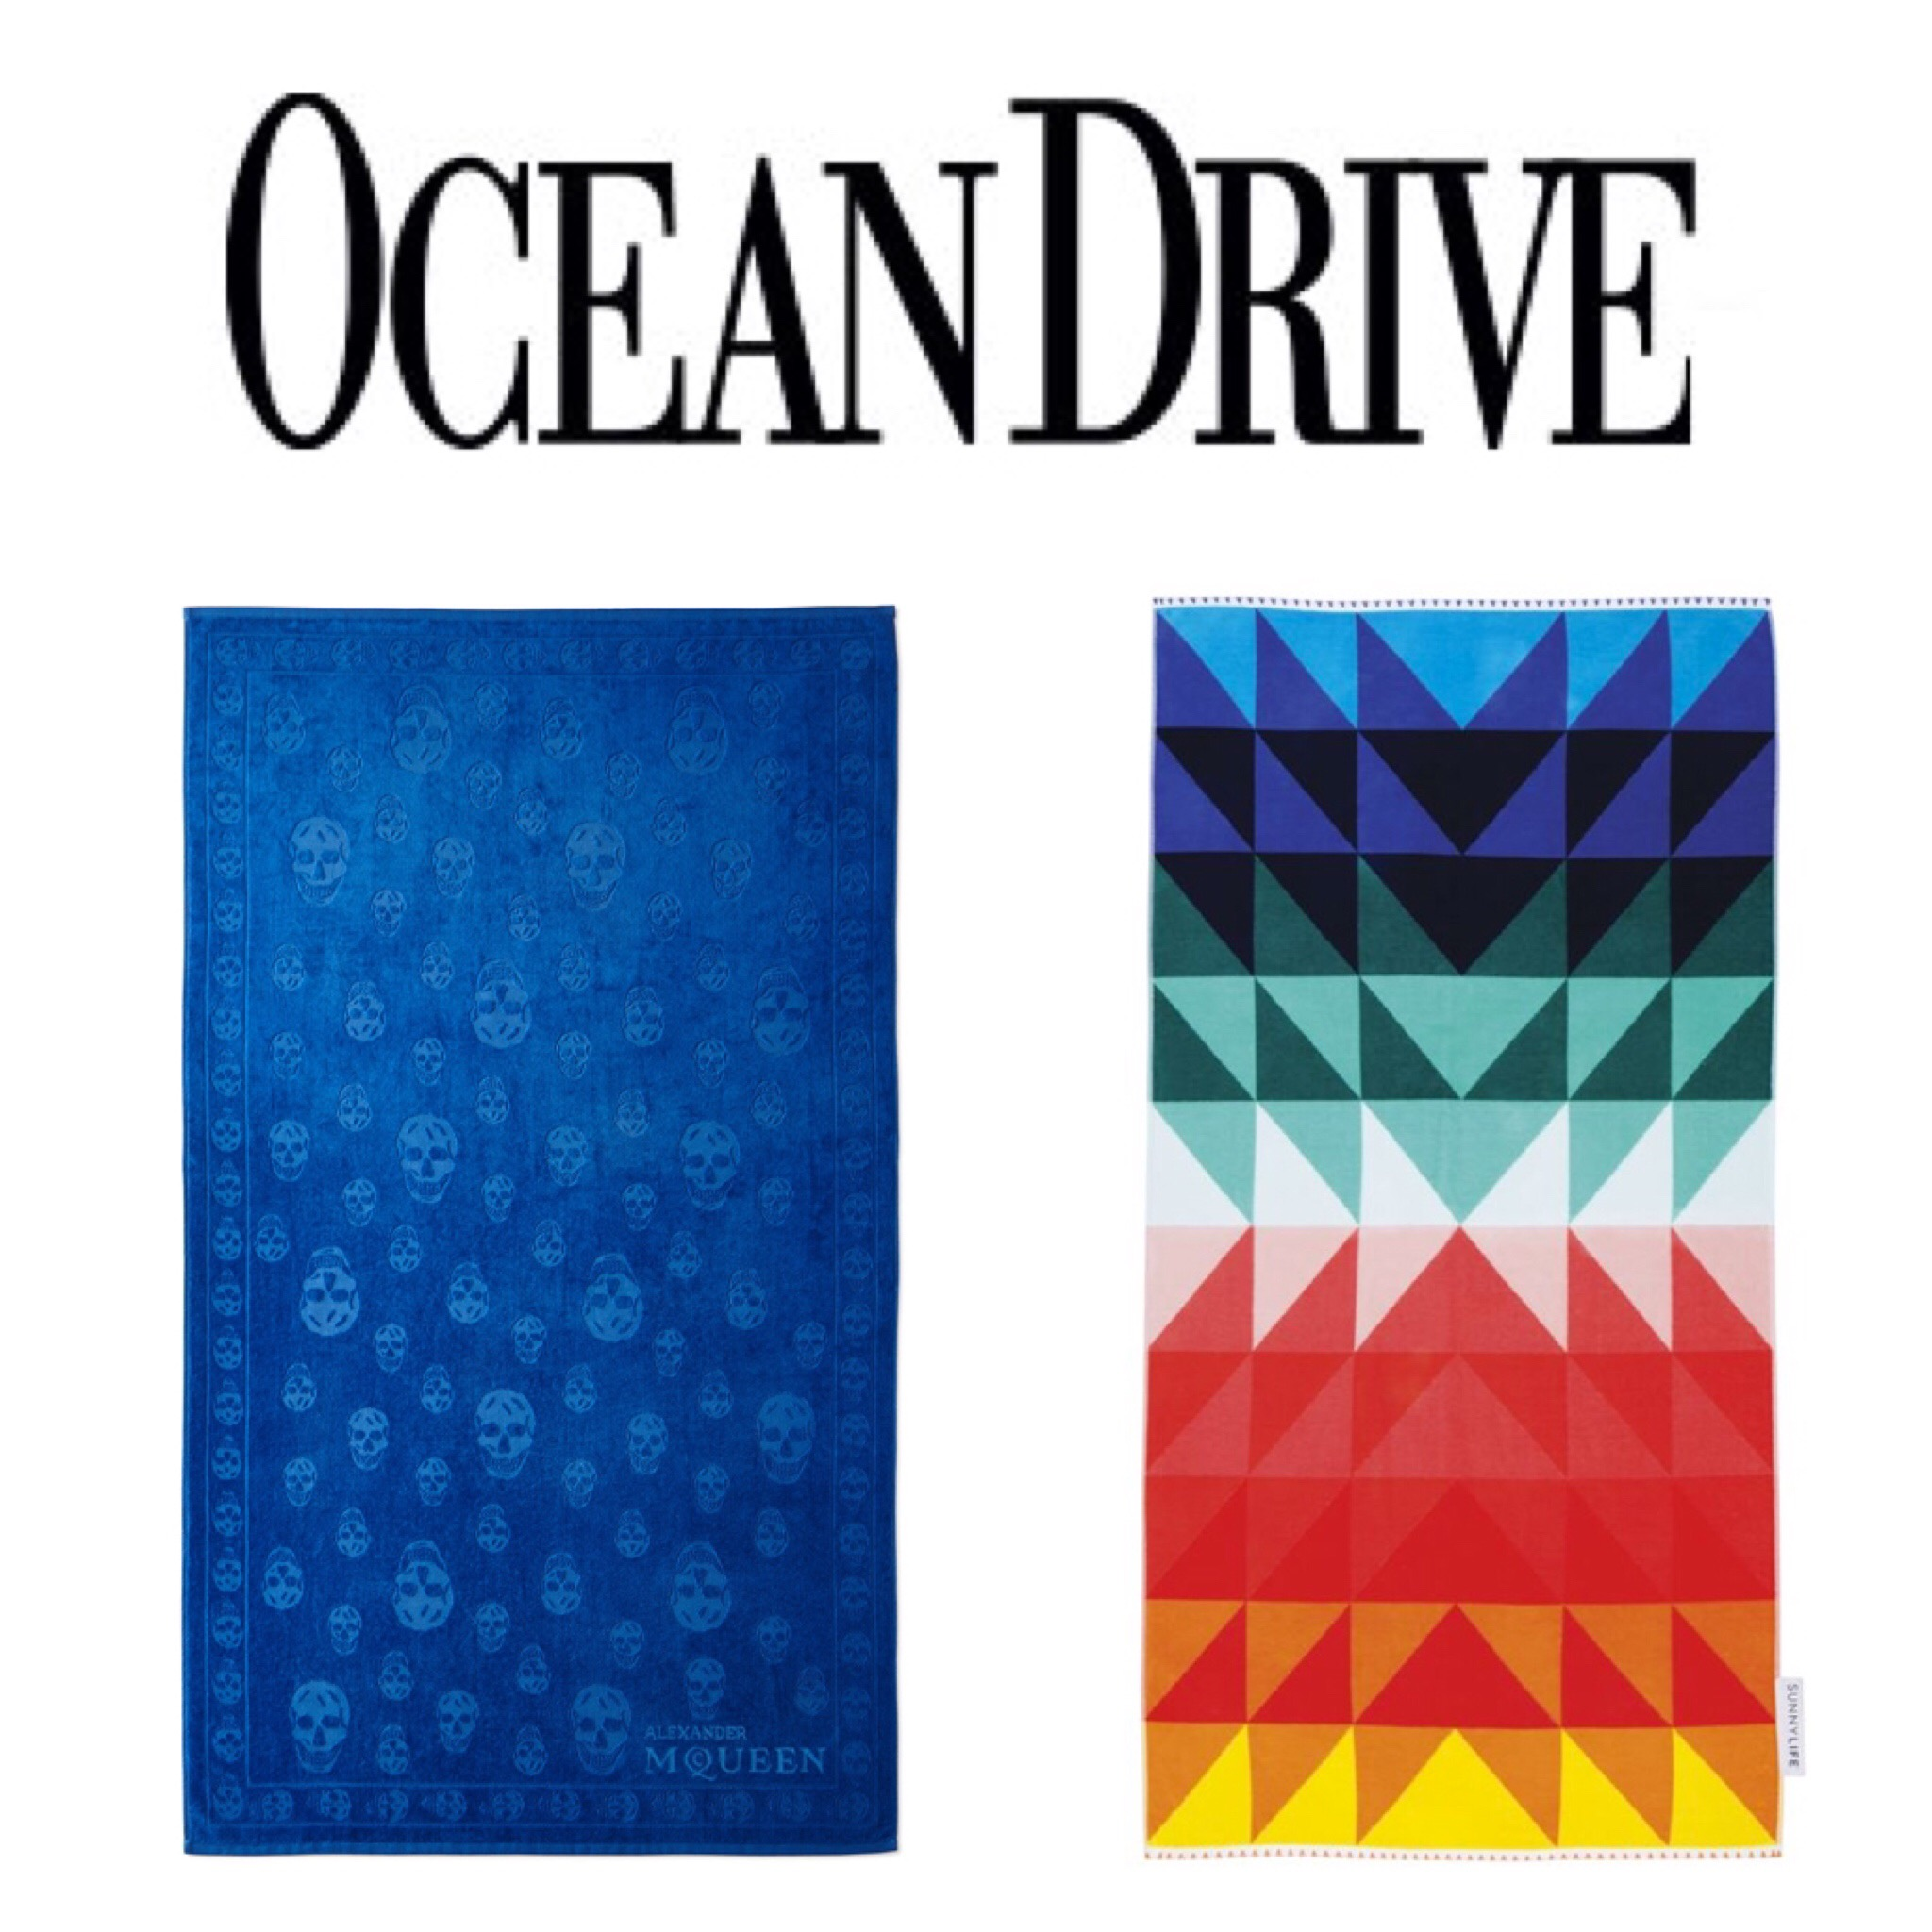 https://oceandrive.com/scene-stealing-beach-towels-for-the-summer